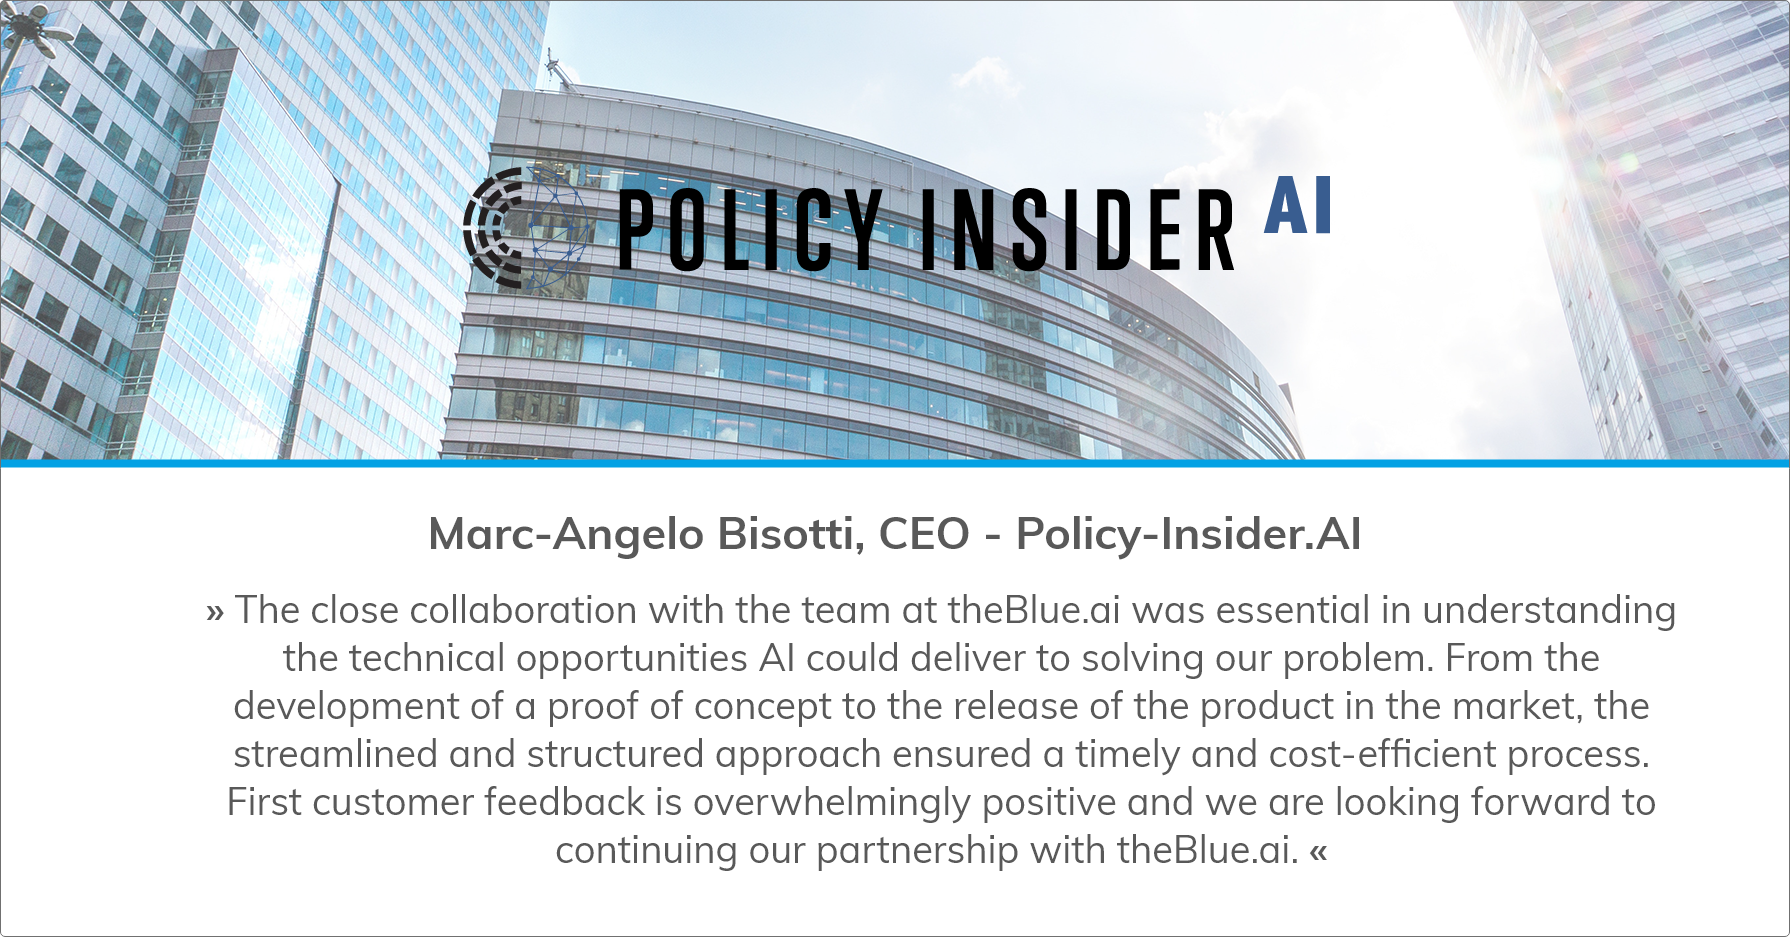 AI-powered platform for politicy monitoring and analysis with Policy-Insider.AI